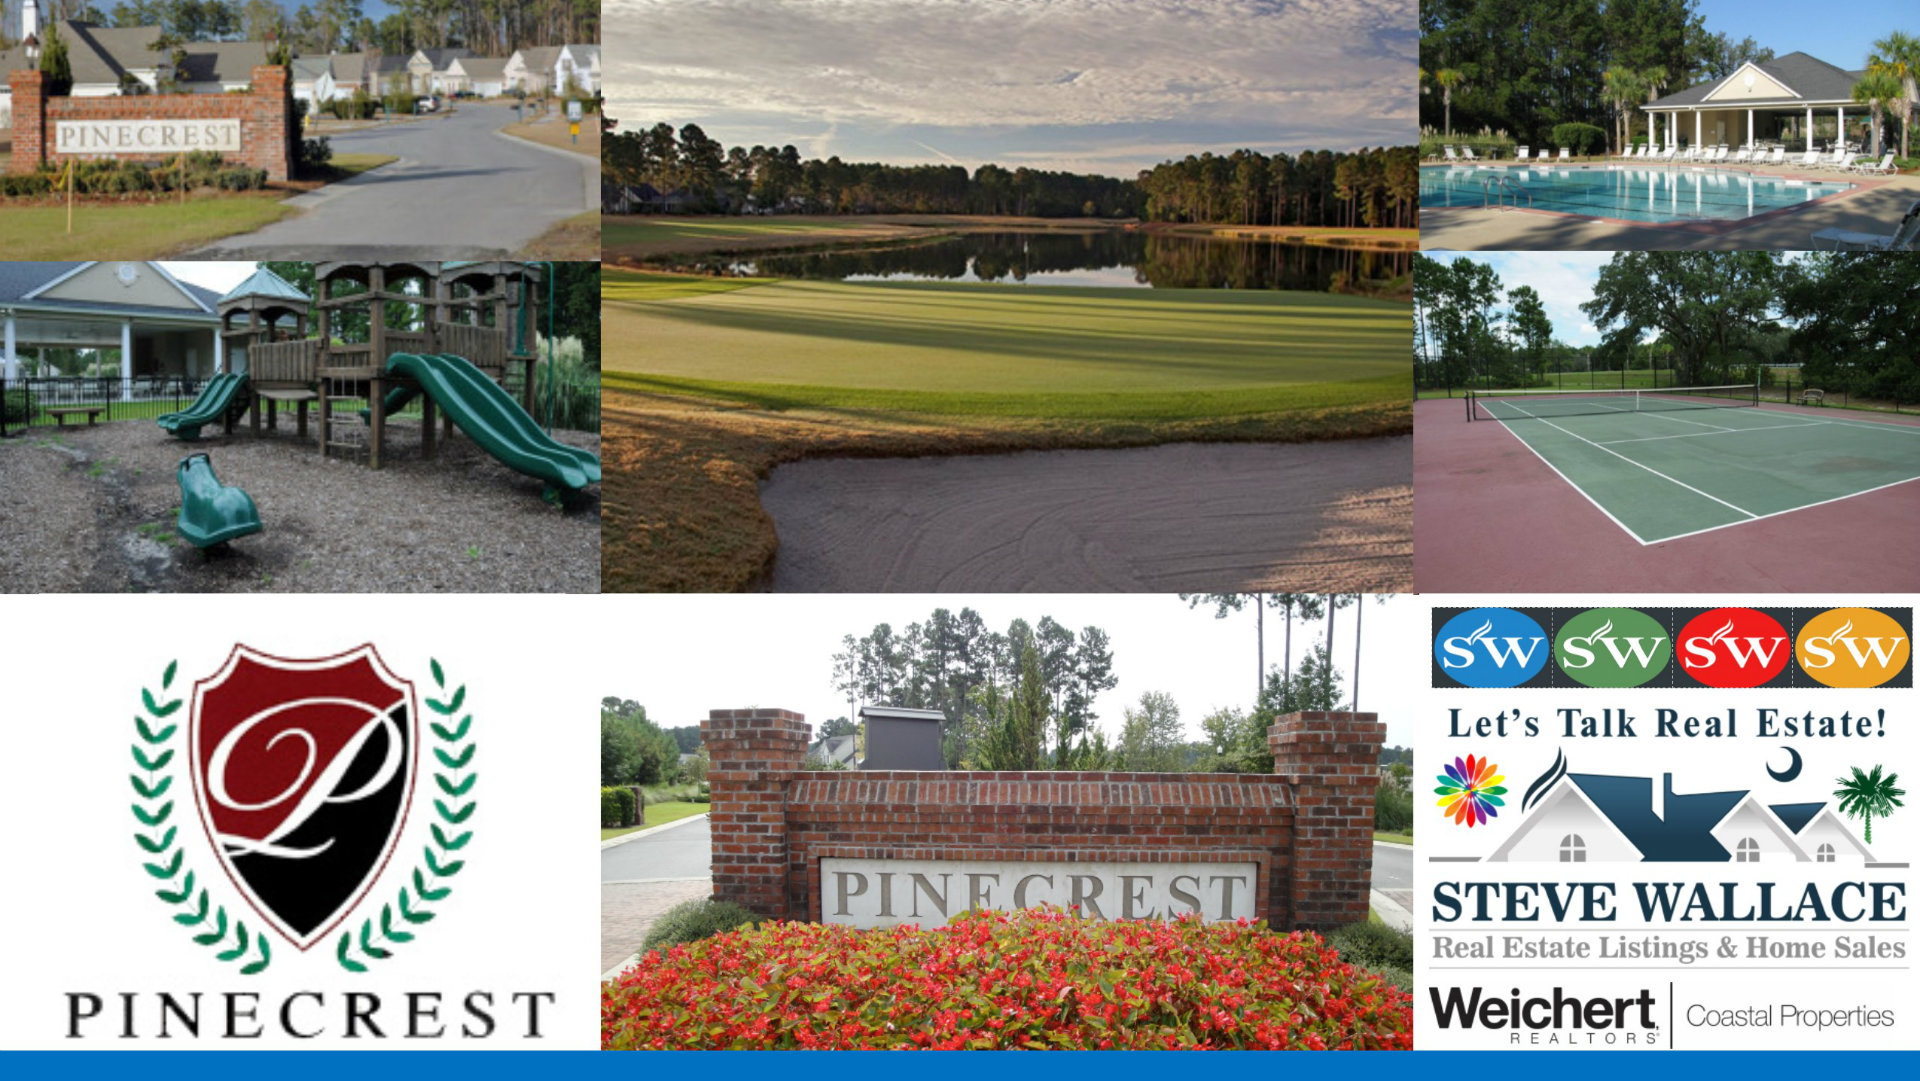 Pinecrest, Homes, For Sale, Real Estate, Bluffton, SC